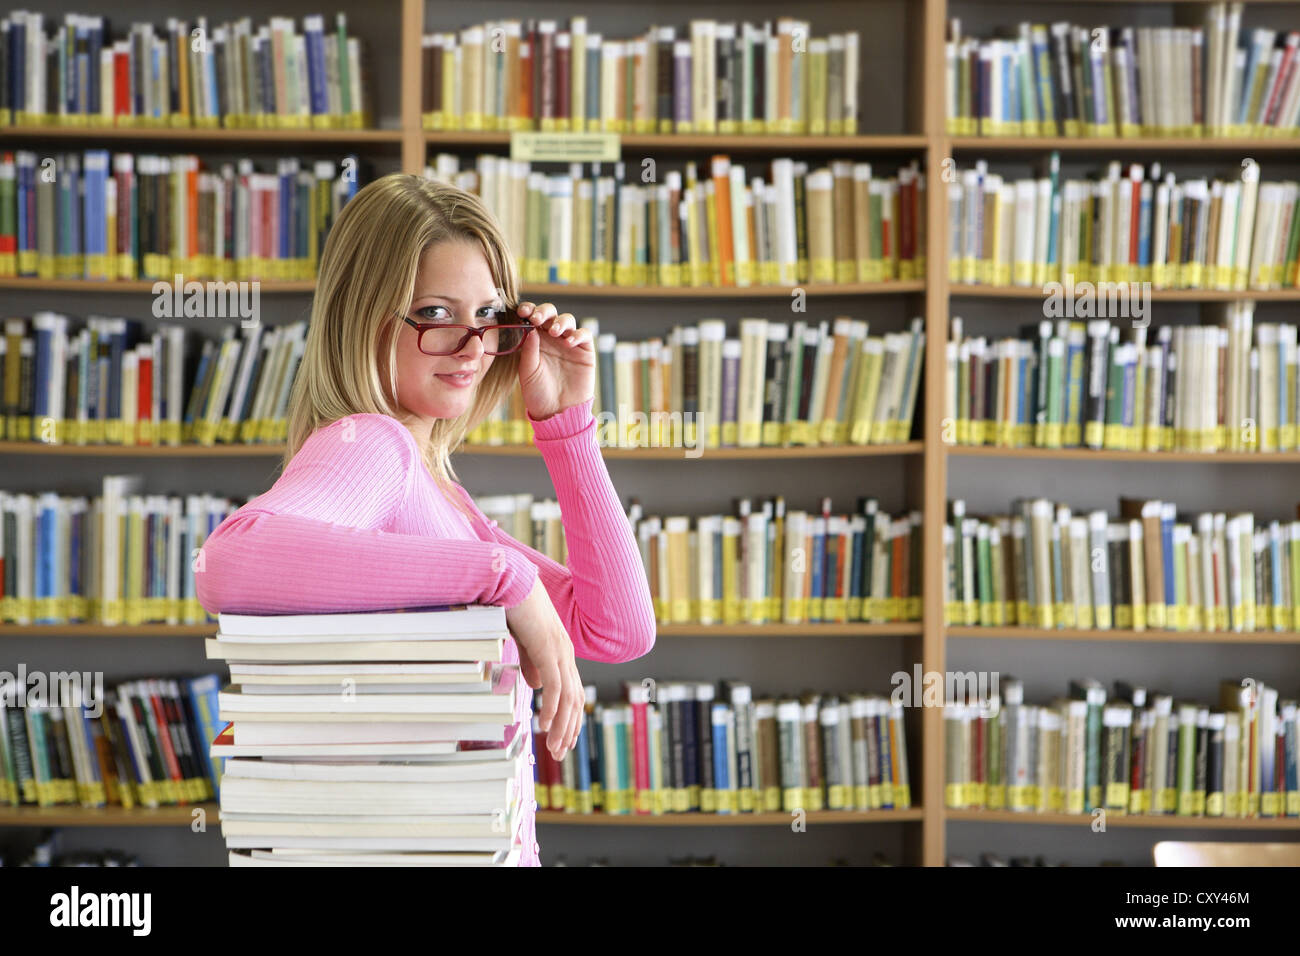 Female student wearing glasses with a stack of books in a university library - Stock Image